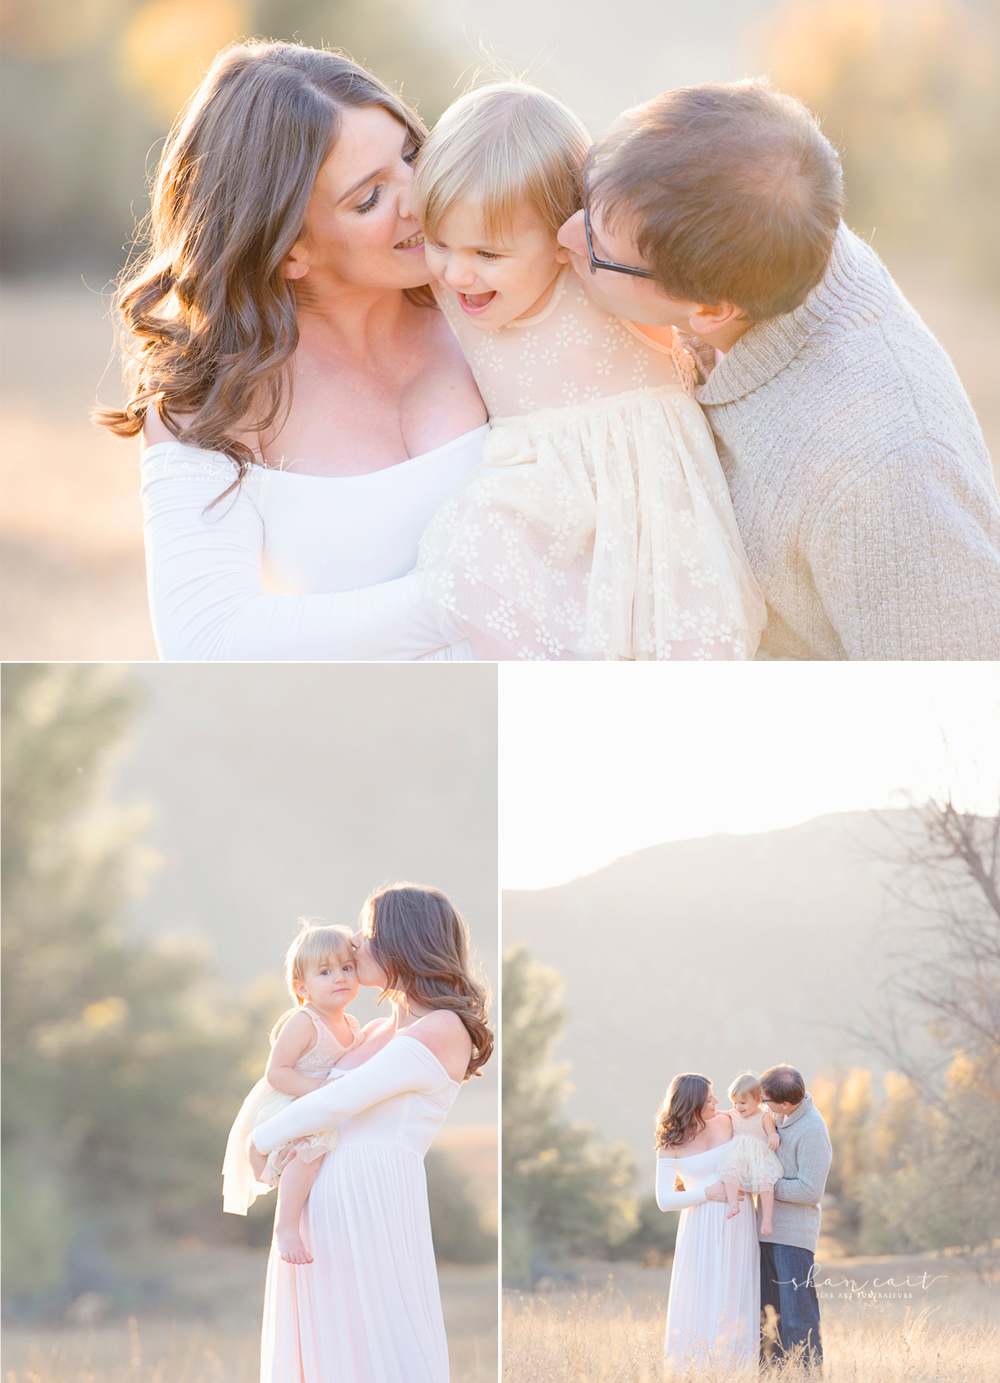 4378c5d438029 SHAN CAIT PHOTOGRAPHY SPECIALIZES IN NATURAL NEWBORN, BABY, MATERNITY,  FAMILY, AND CHILD PHOTOGRAPHY IN EL DORADO HILLS, CA AND SURROUNDING AREAS  INCLUDING ...